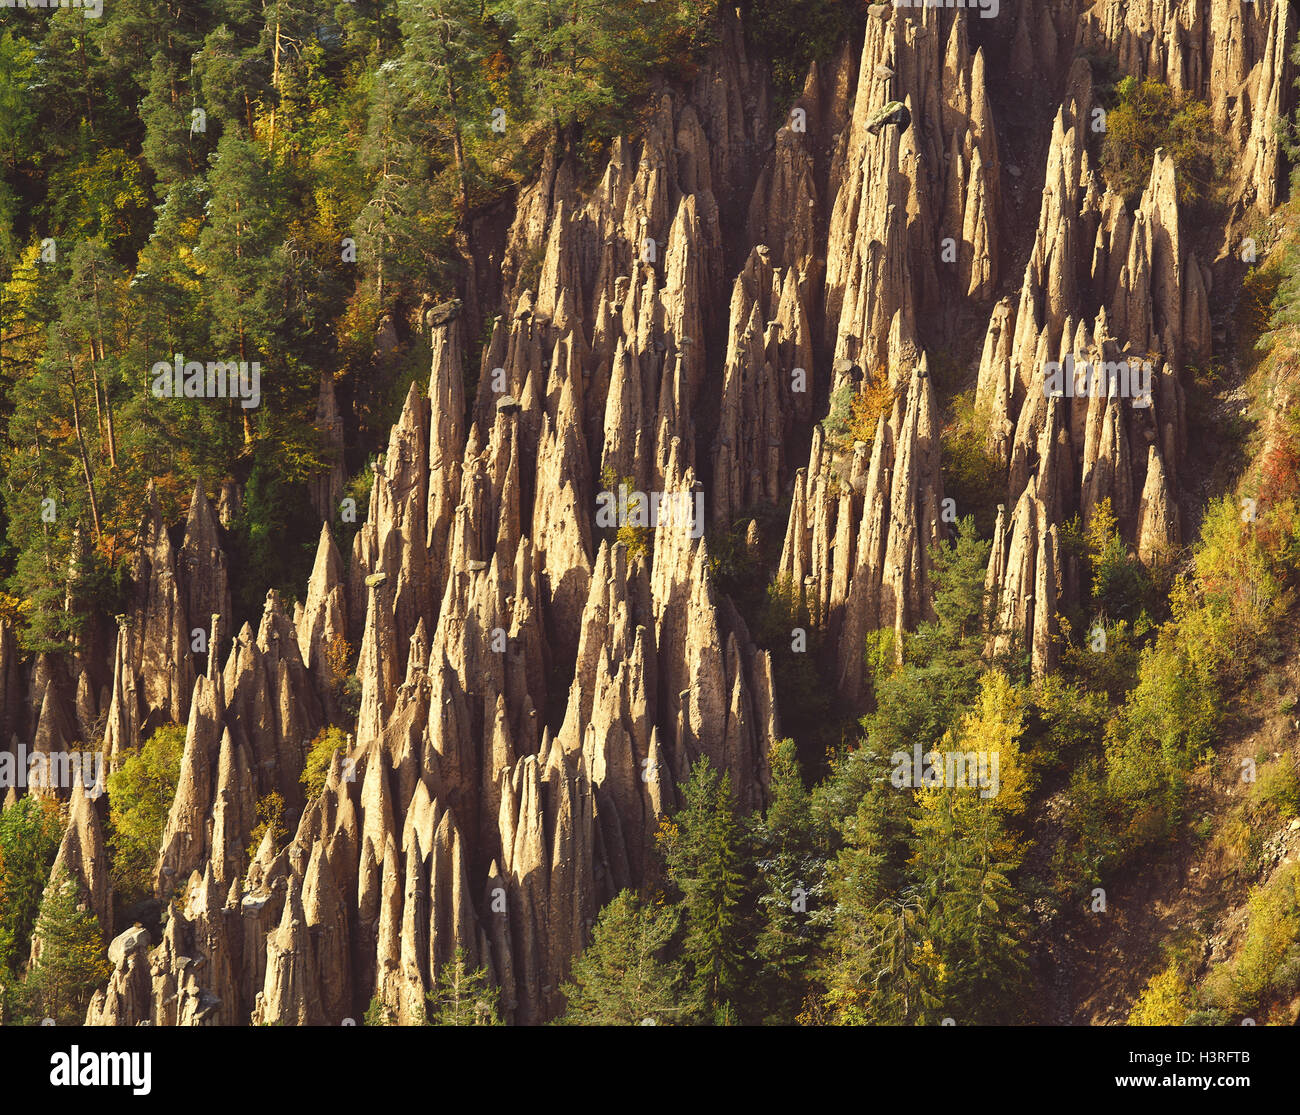 Italy, South Tyrol, earth pyramids in the ride, earth pyramids, wood, nature, erosion, geology, nature forms, stones, - Stock Image